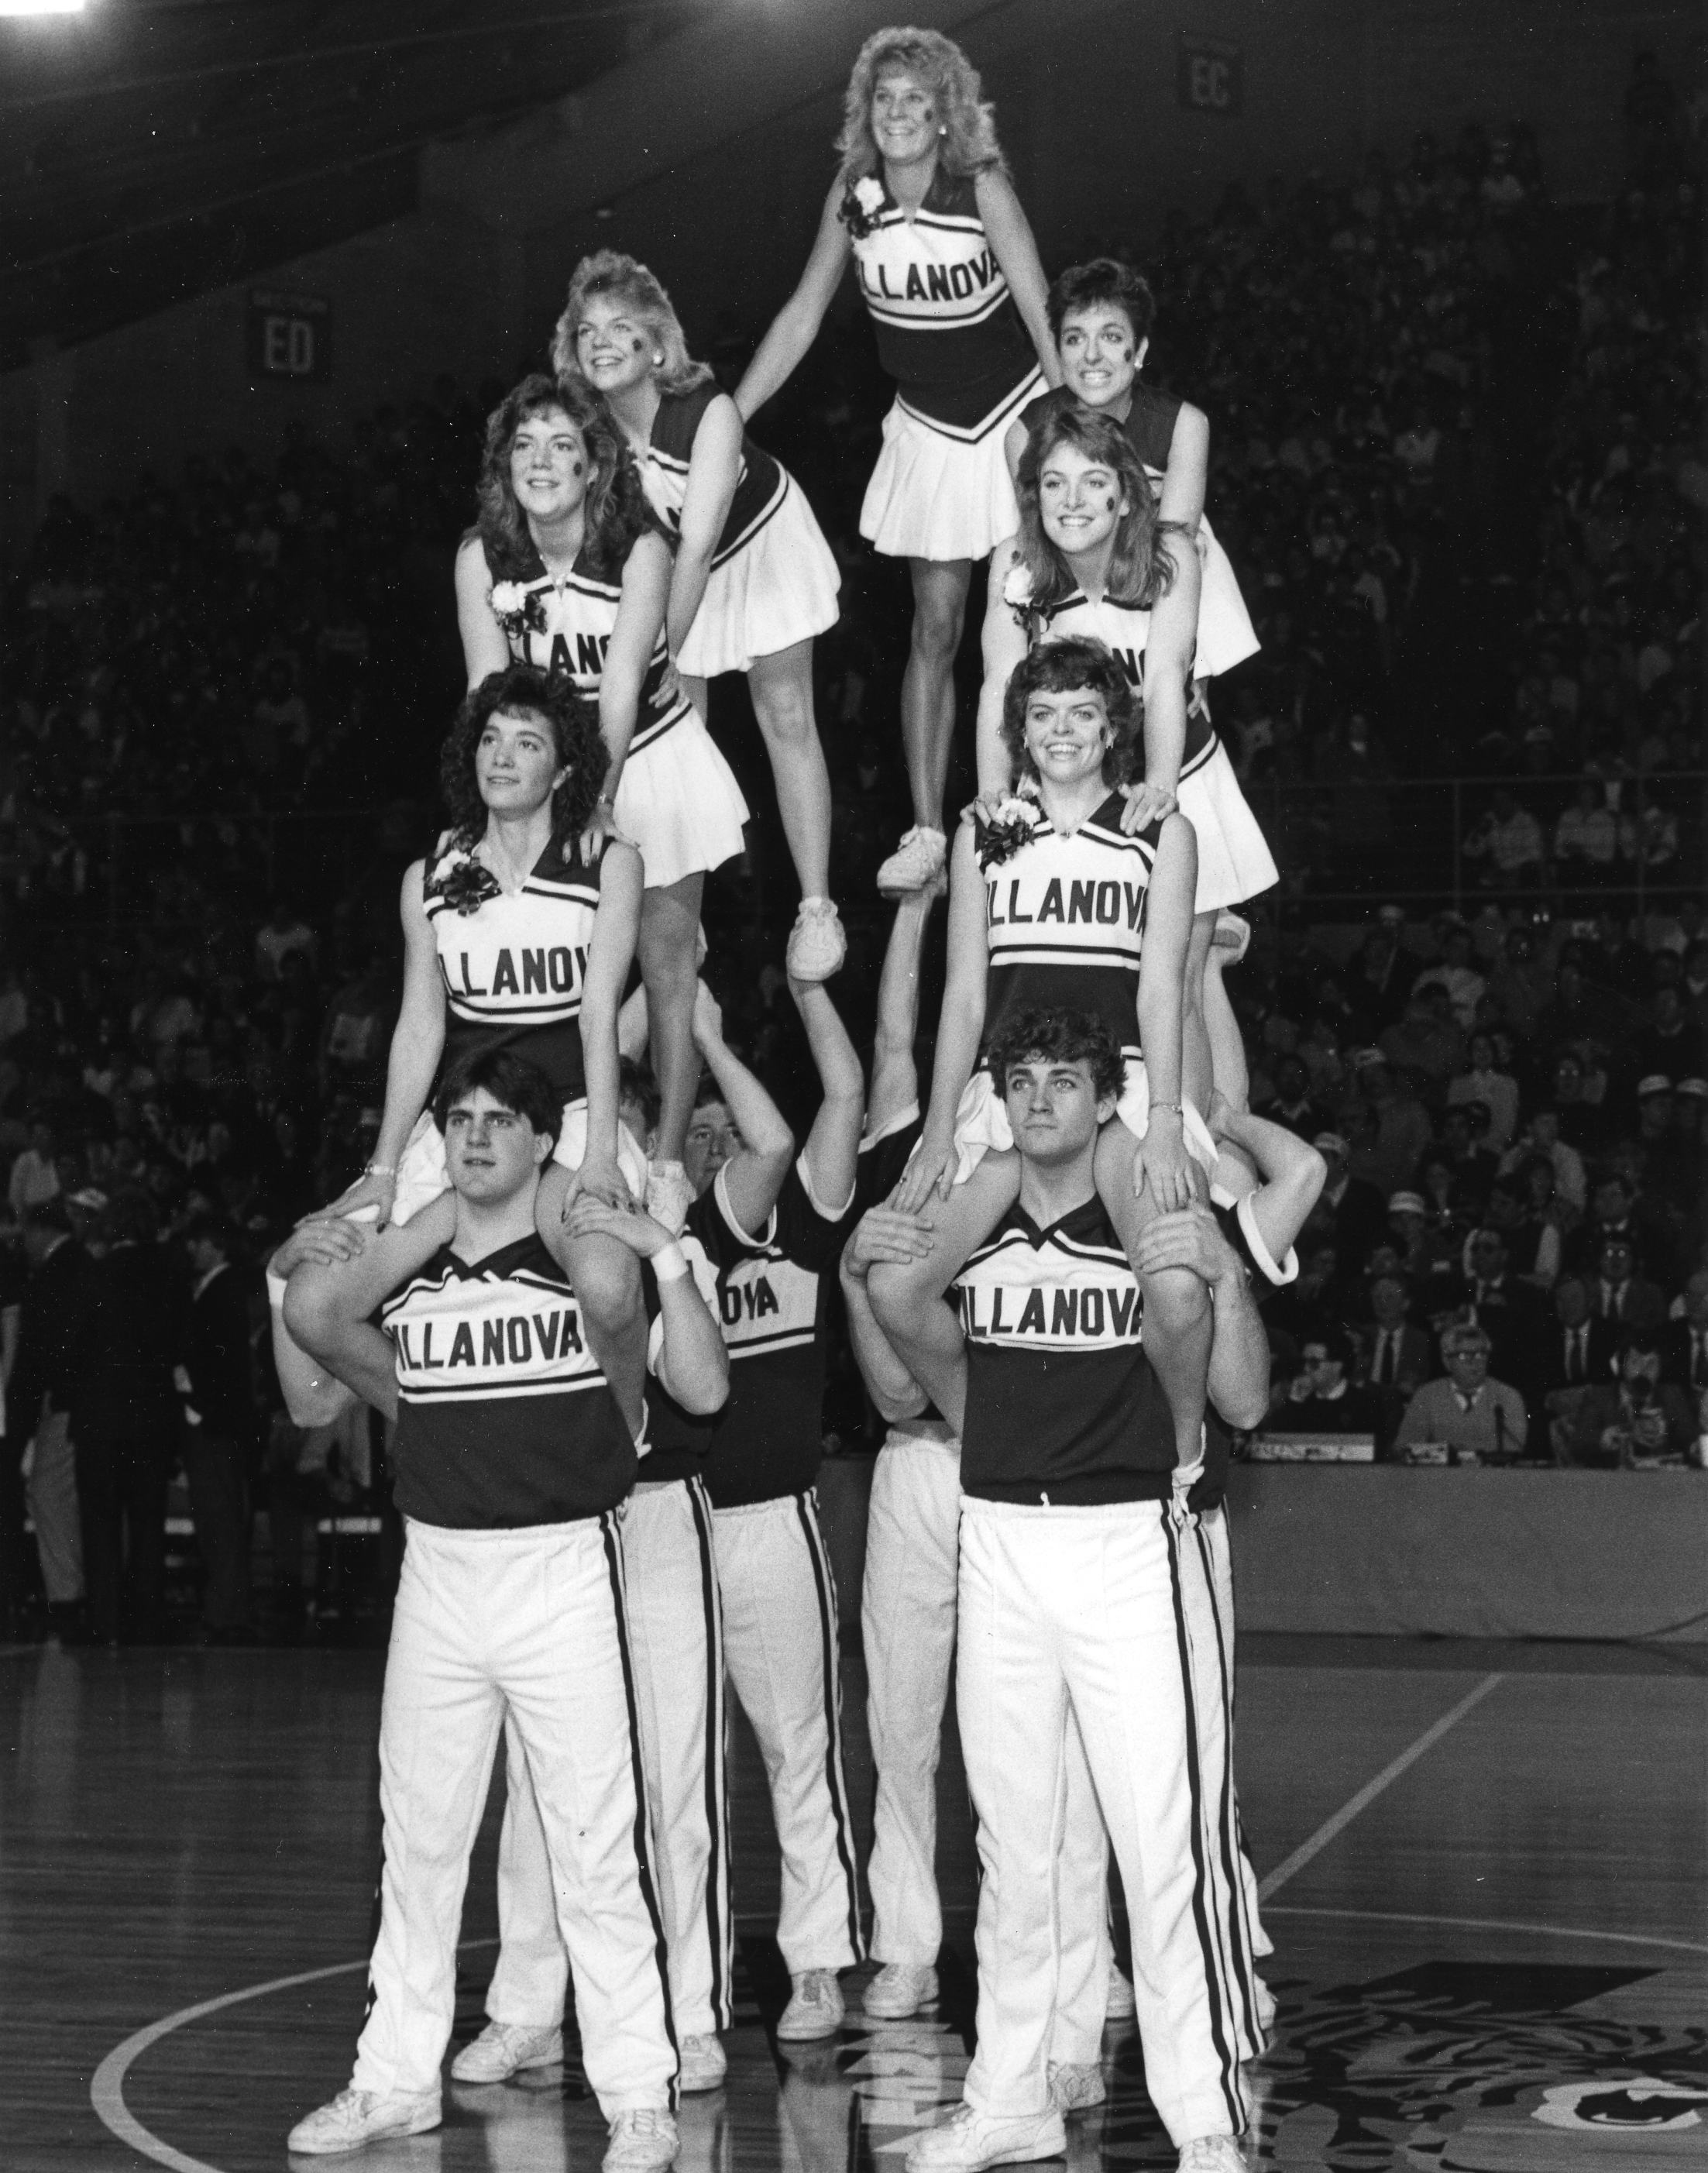 Villanova Cheerleaders, 1986